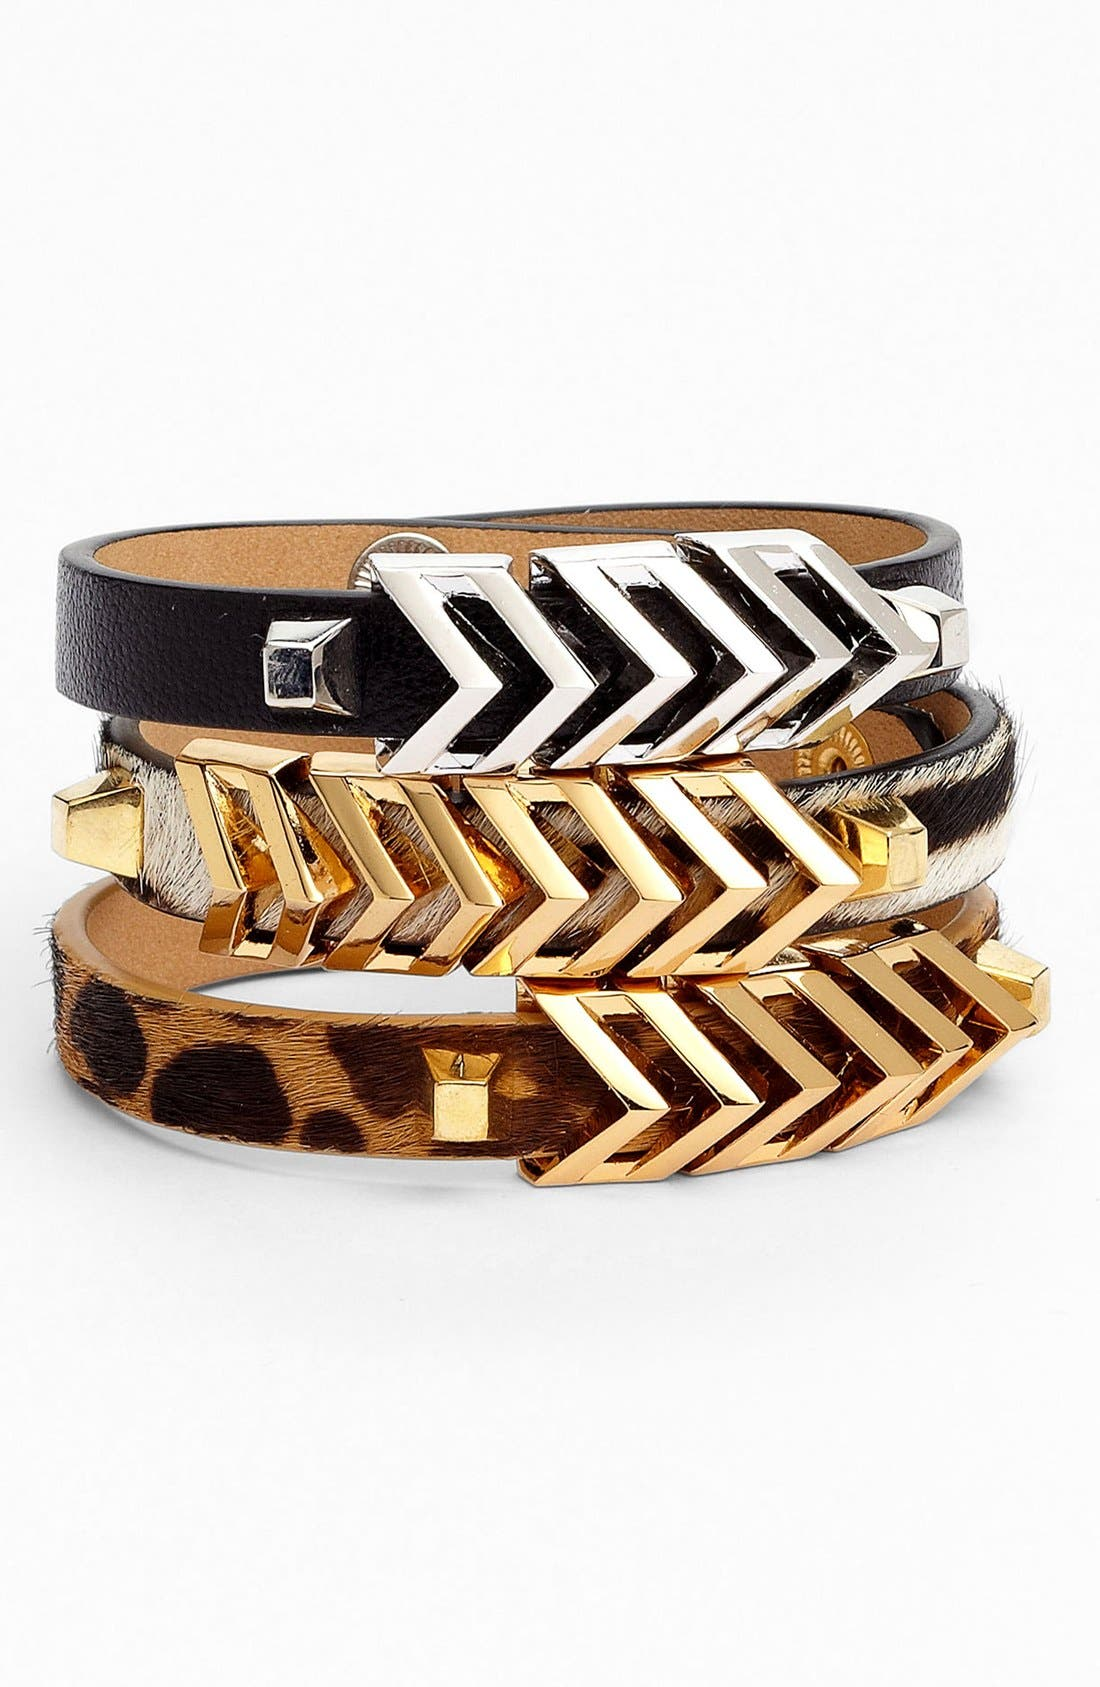 Alternate Image 1 Selected - Vince Camuto 'Call of the Wild' Chevron Bracelet (Nordstrom Exclusive)